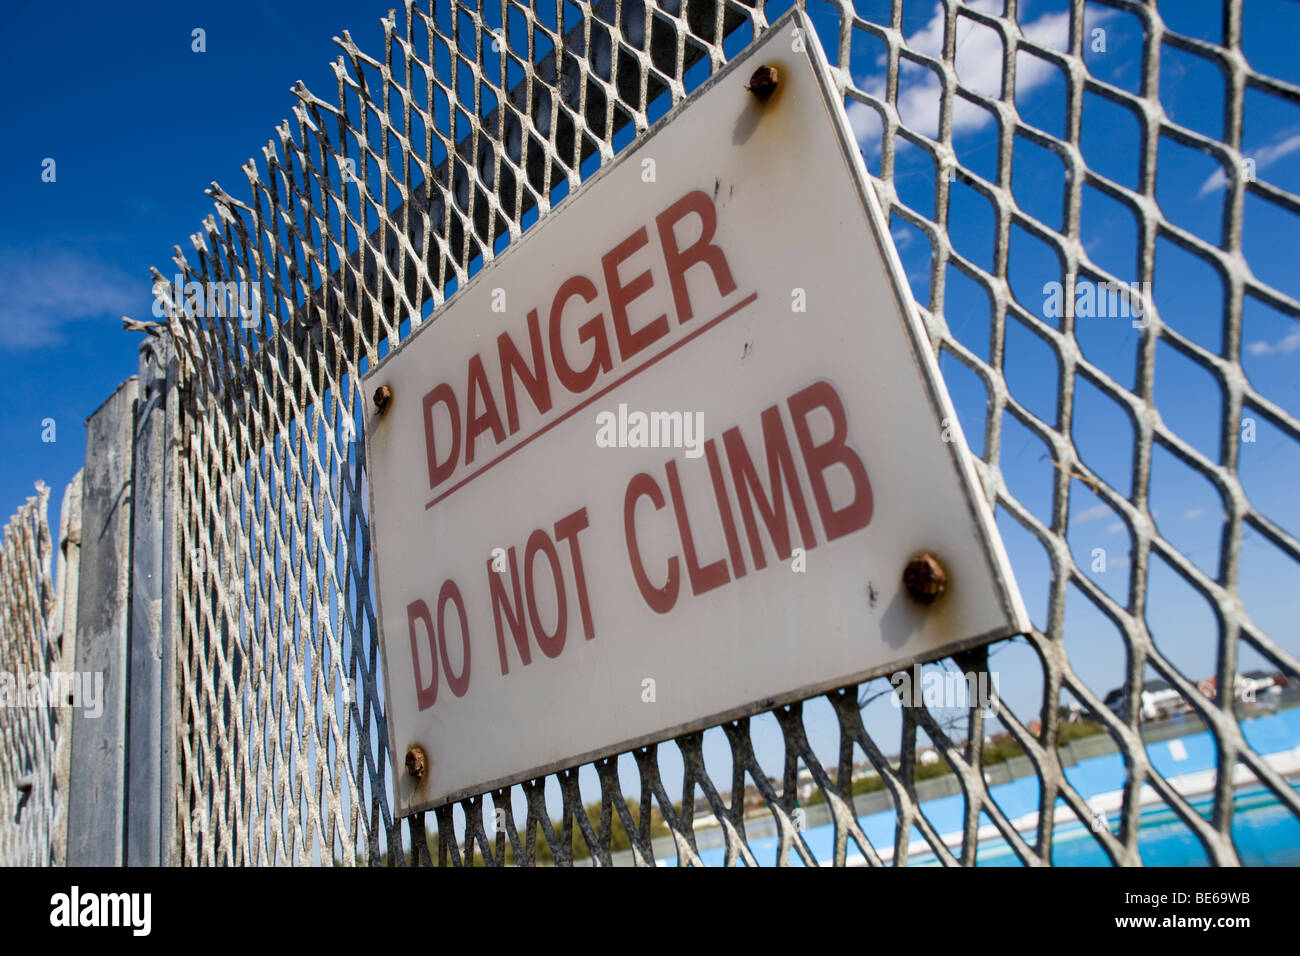 Danger Do Not Climb sign on the security fence around the closed outdoor swimming pool at Brightlingsea on the Essex - Stock Image